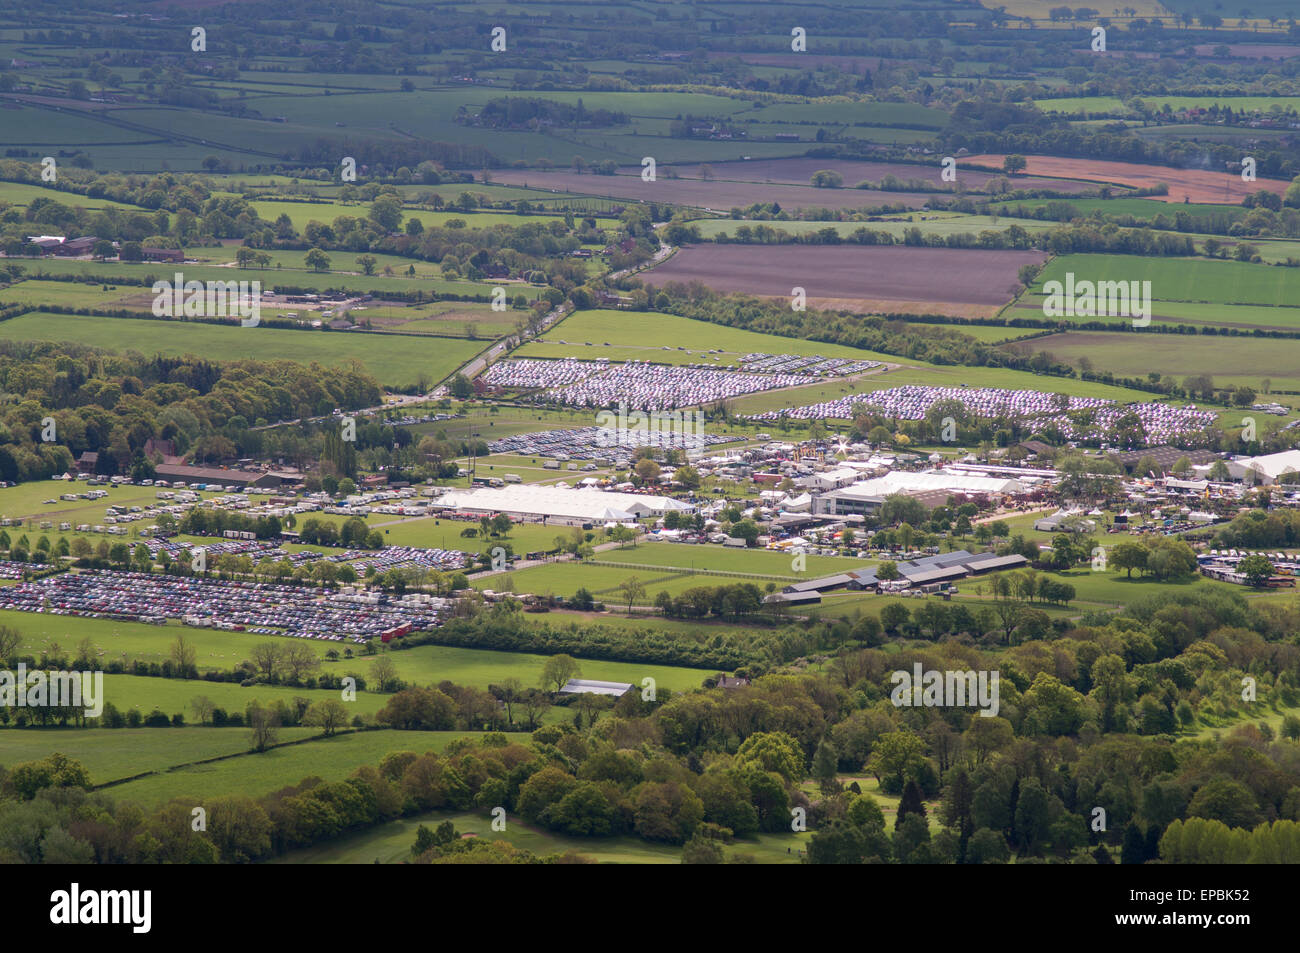 View over the RHS Malvern Spring Festival at the Three Counties Showground, Worcestershire, England, UK - Stock Image